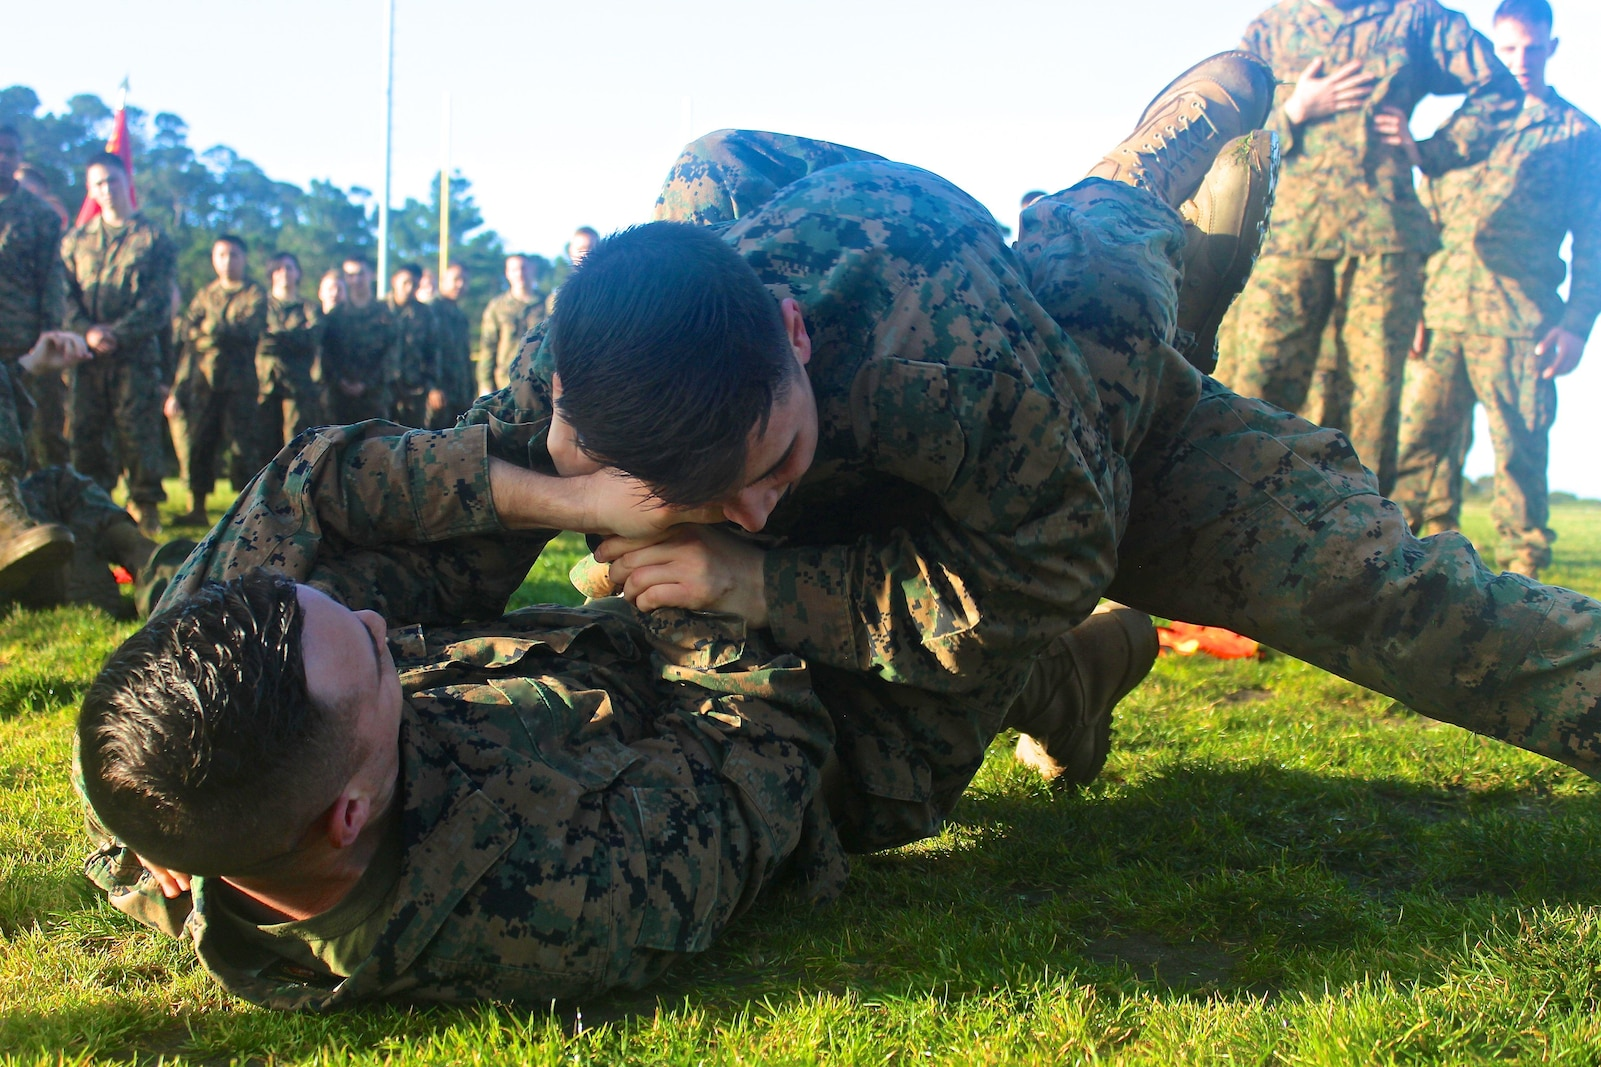 Marines from the Marine Corps Detachment practicing newly learned ground fighting techniques on one another during a grappling session.